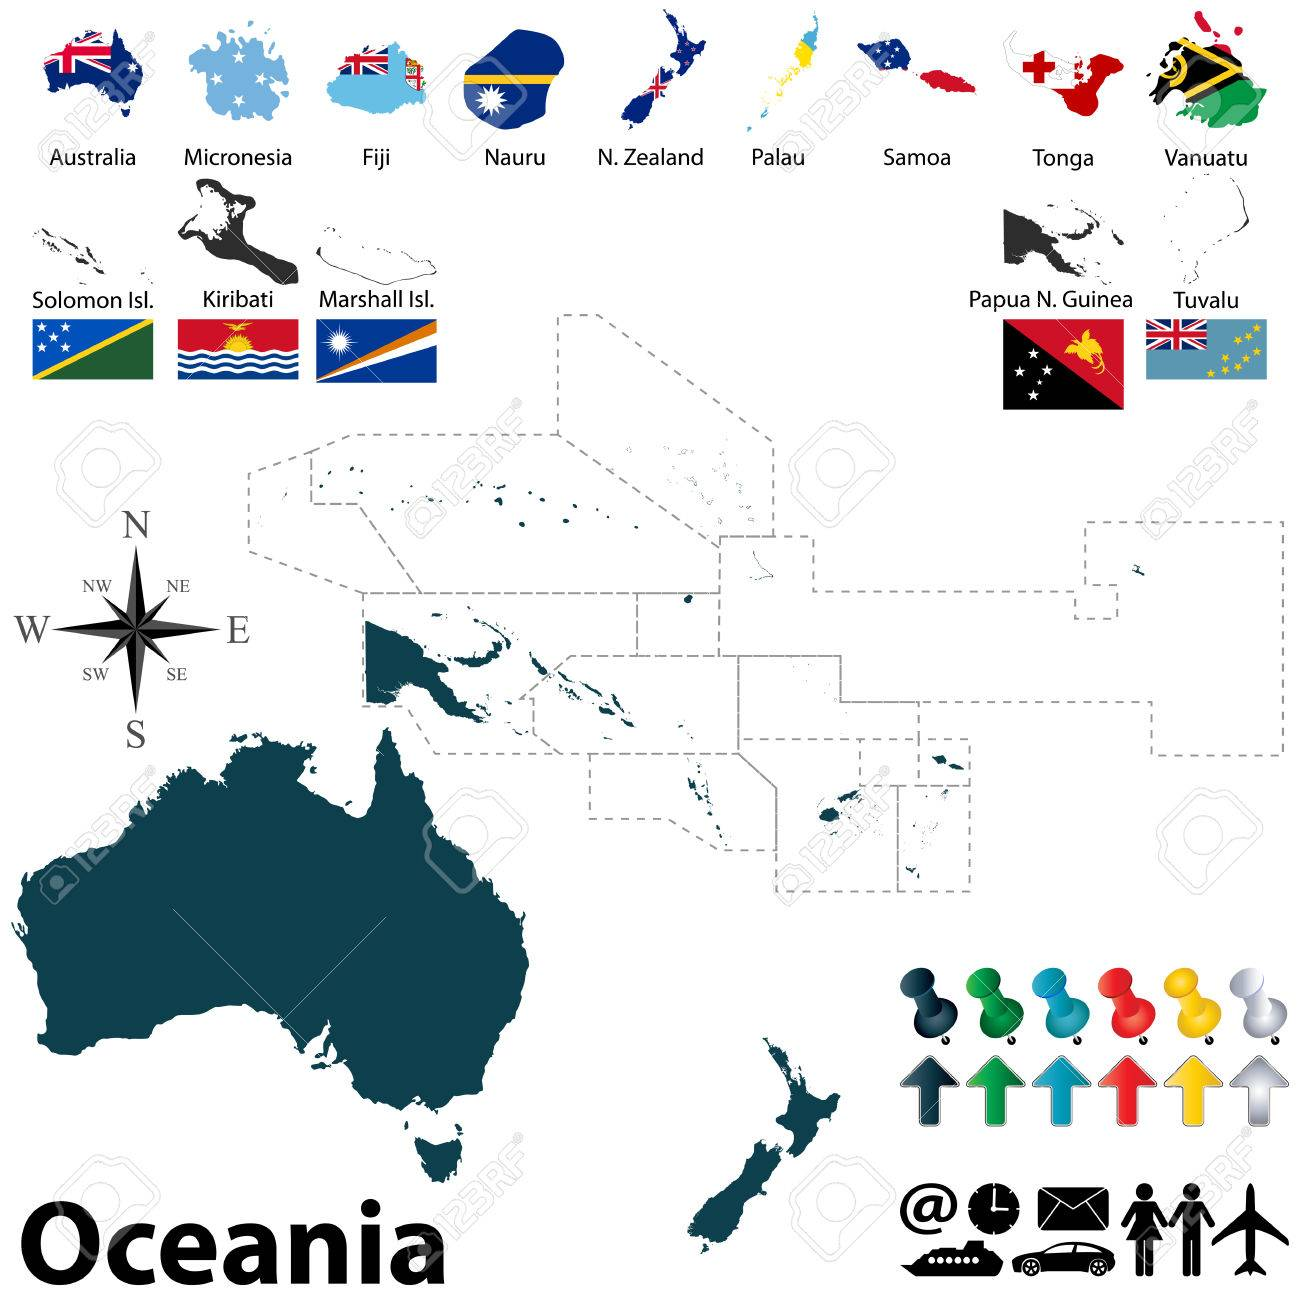 Oceania Flag Map Html Oceania Free Download Images World Maps